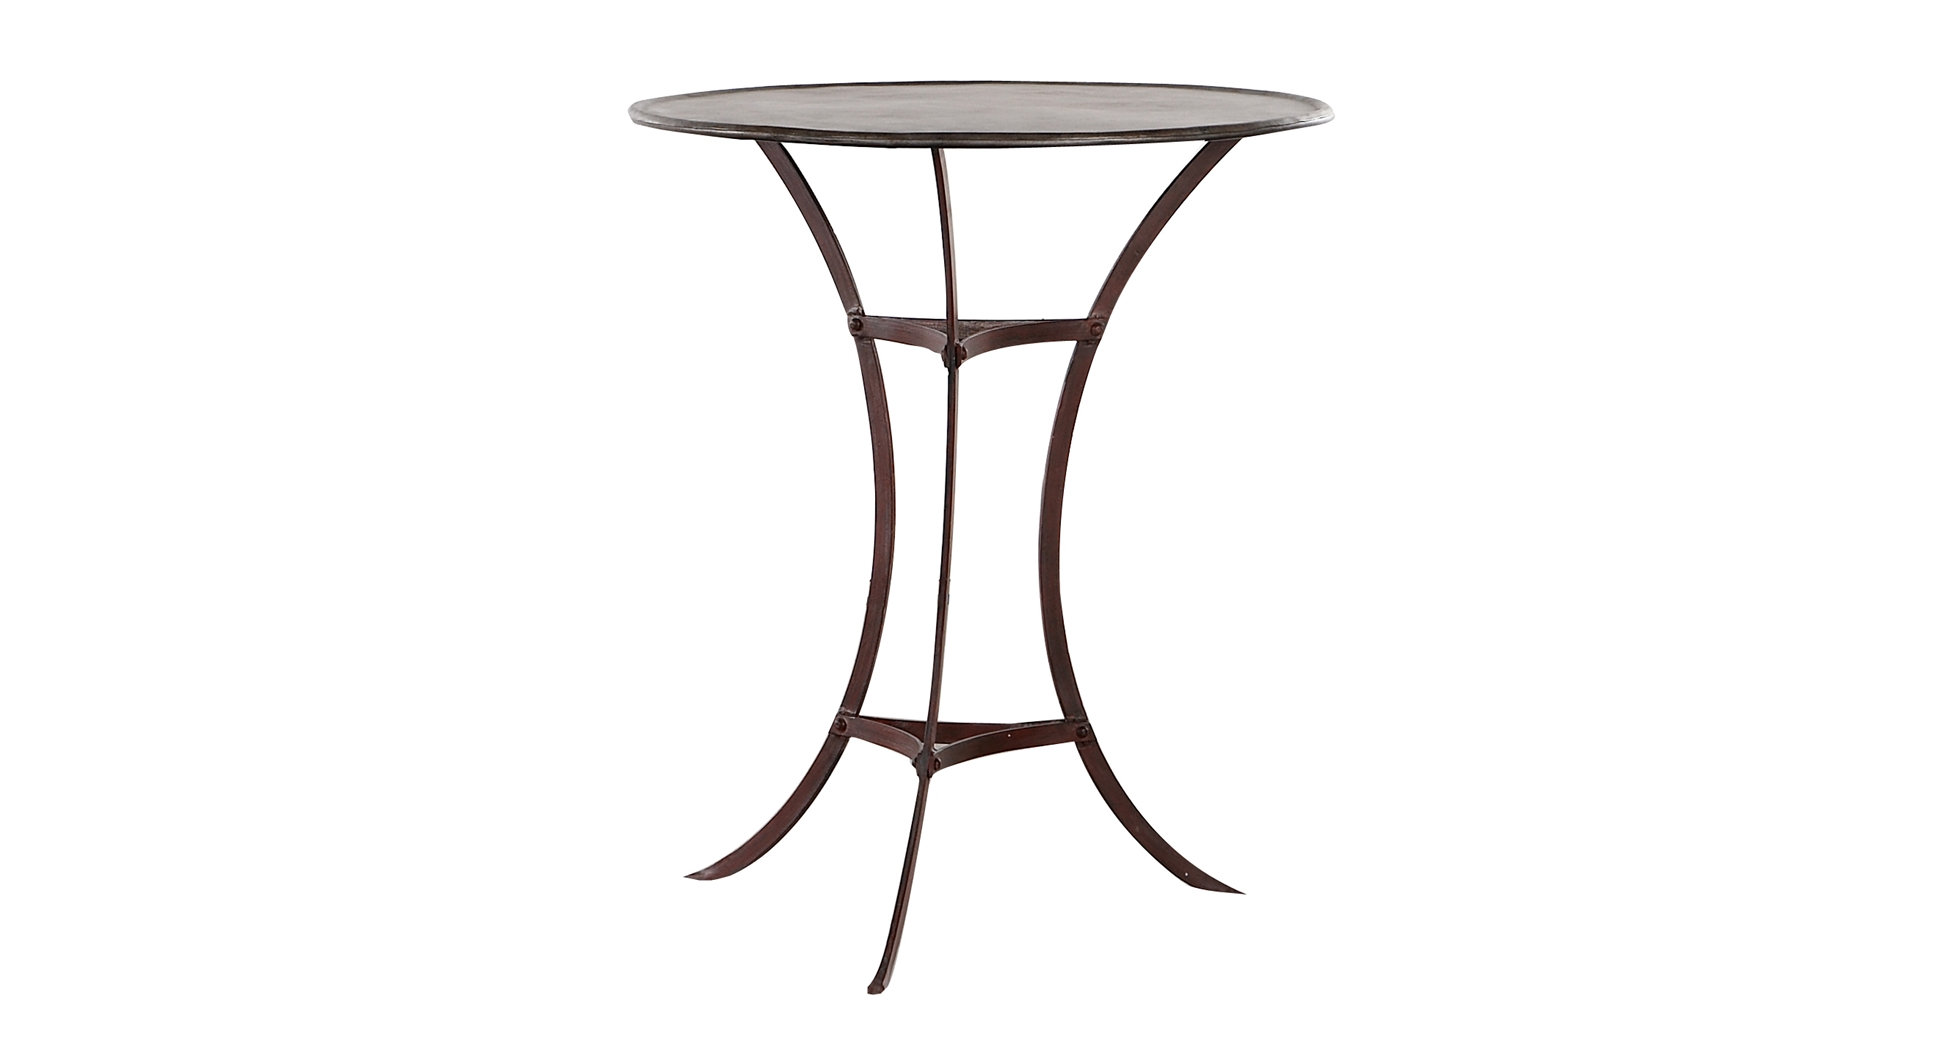 this is a iron side table sold by ham interiors